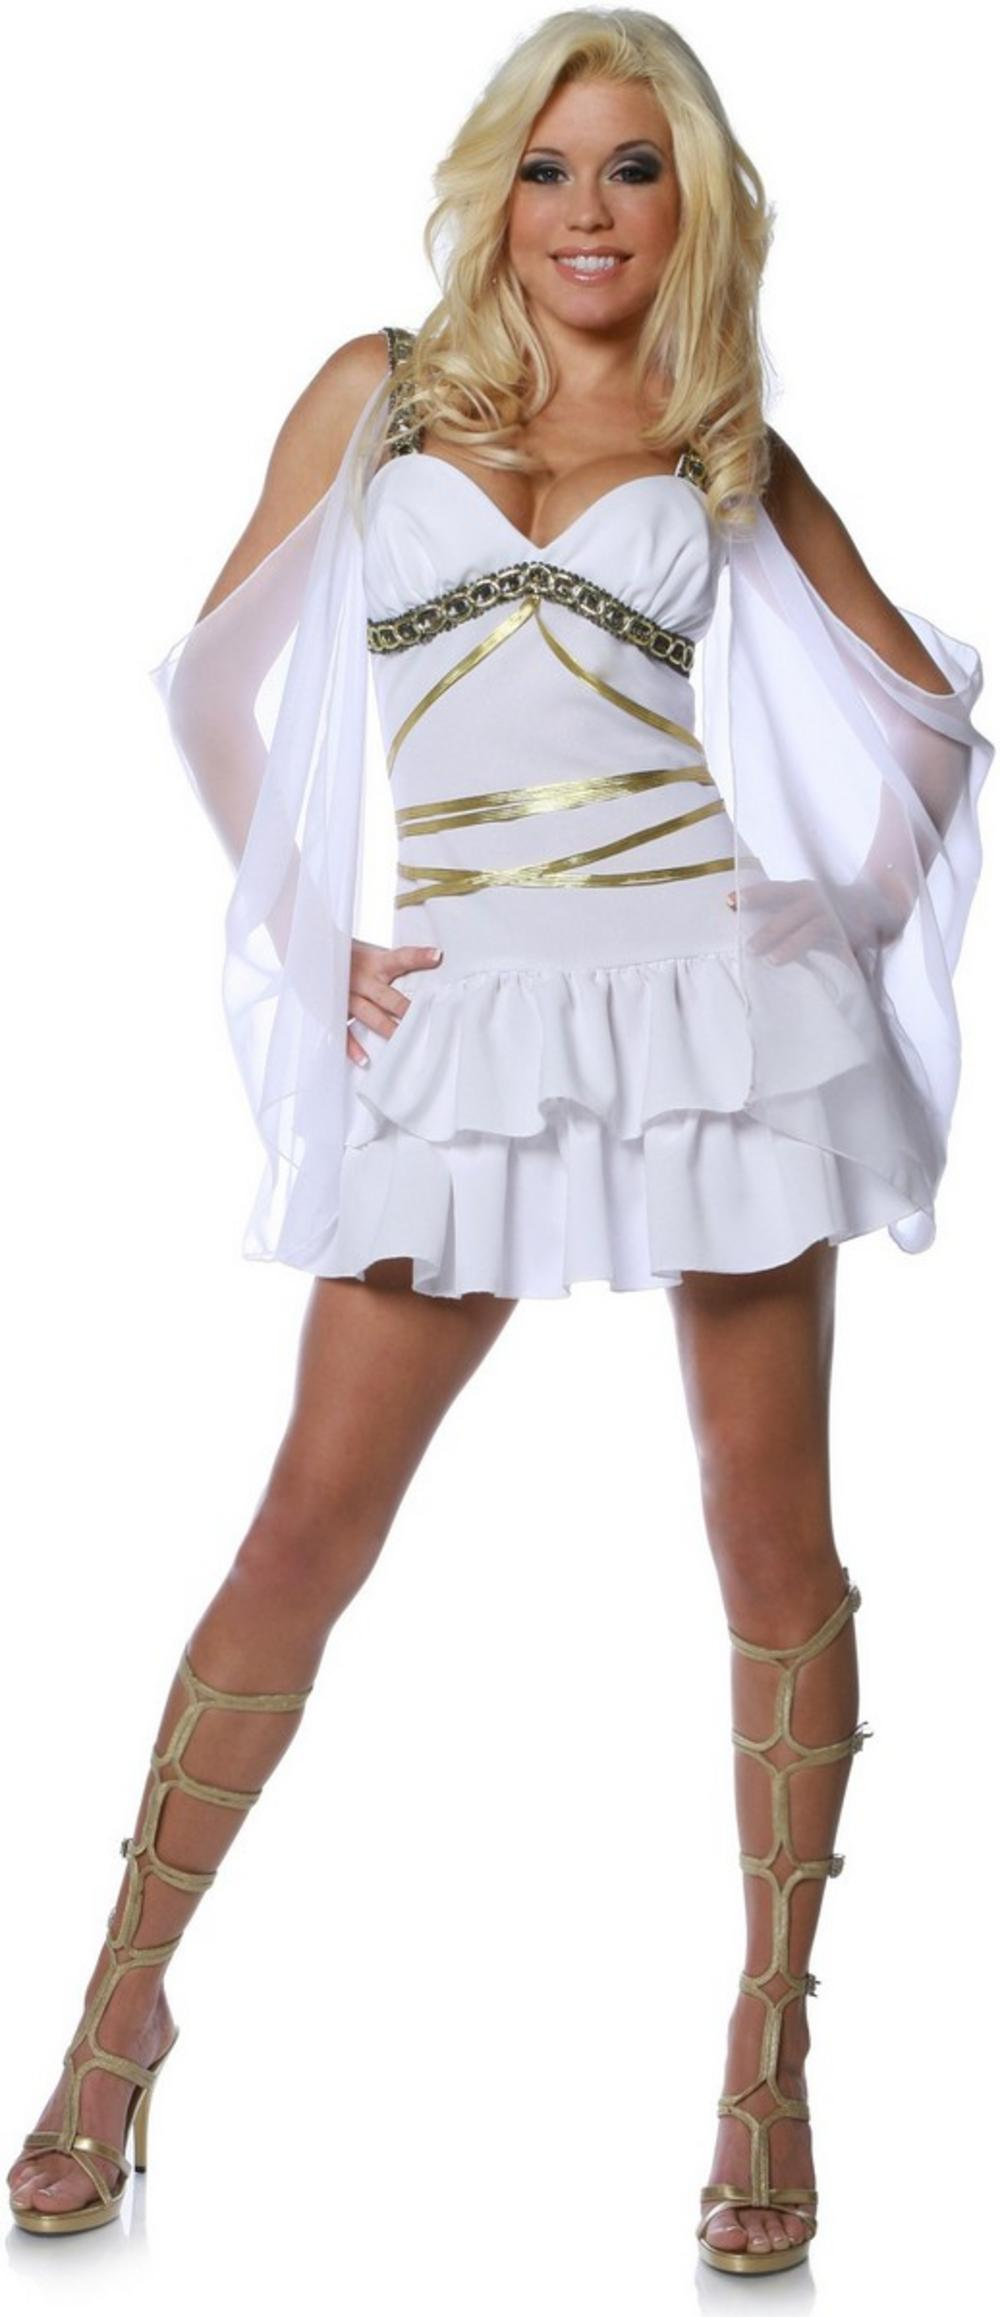 Aphrodite Greek Goddess Greek Goddess Aphrodite Costume Kids  sc 1 st  Djekova & Greek Goddess Aphrodite Costume Kids - More information - Djekova